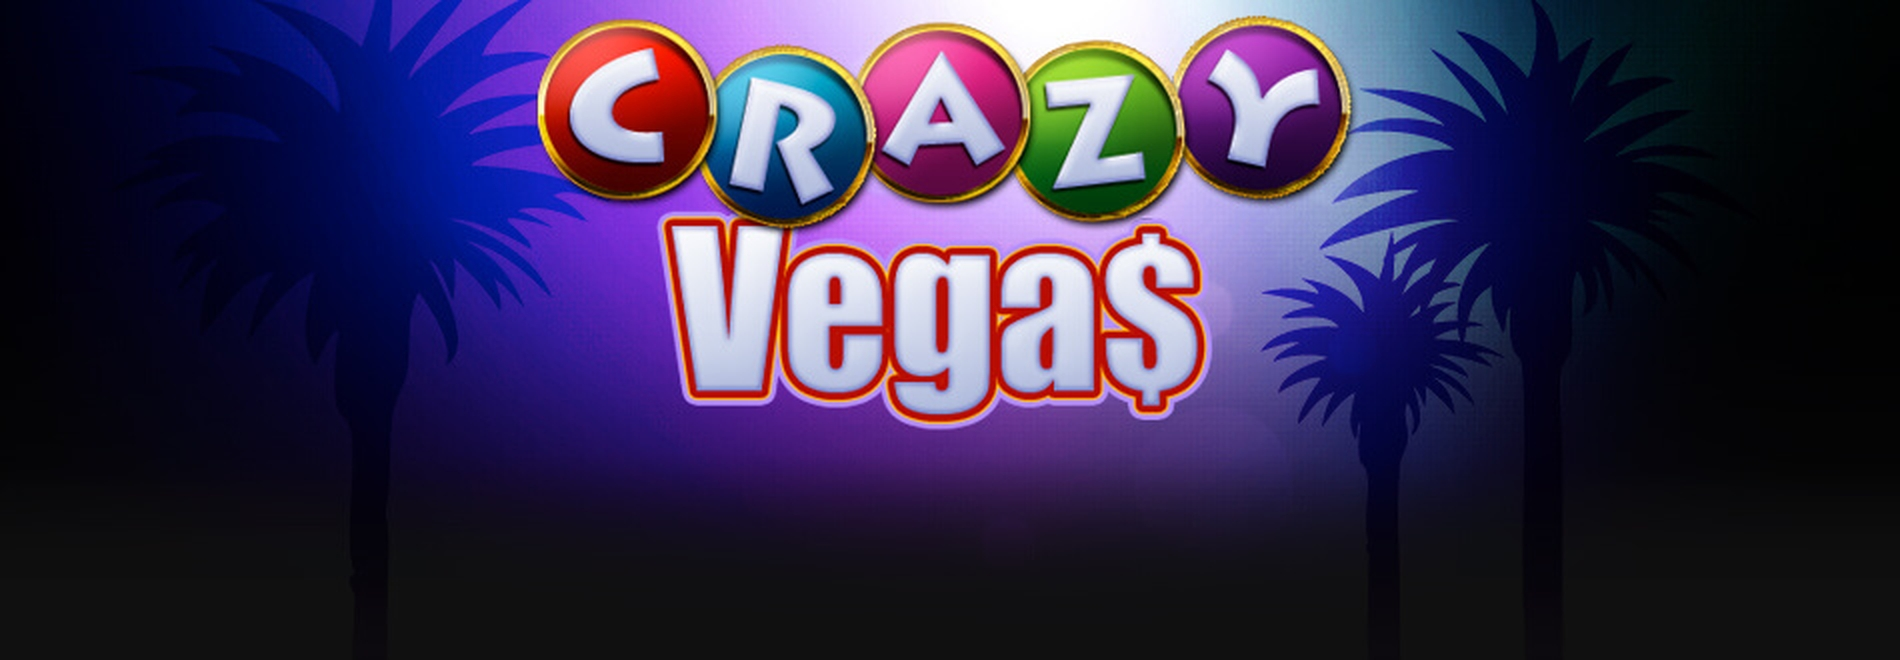 Crazy Vegas Online Slot Demo Game by Real Time Gaming